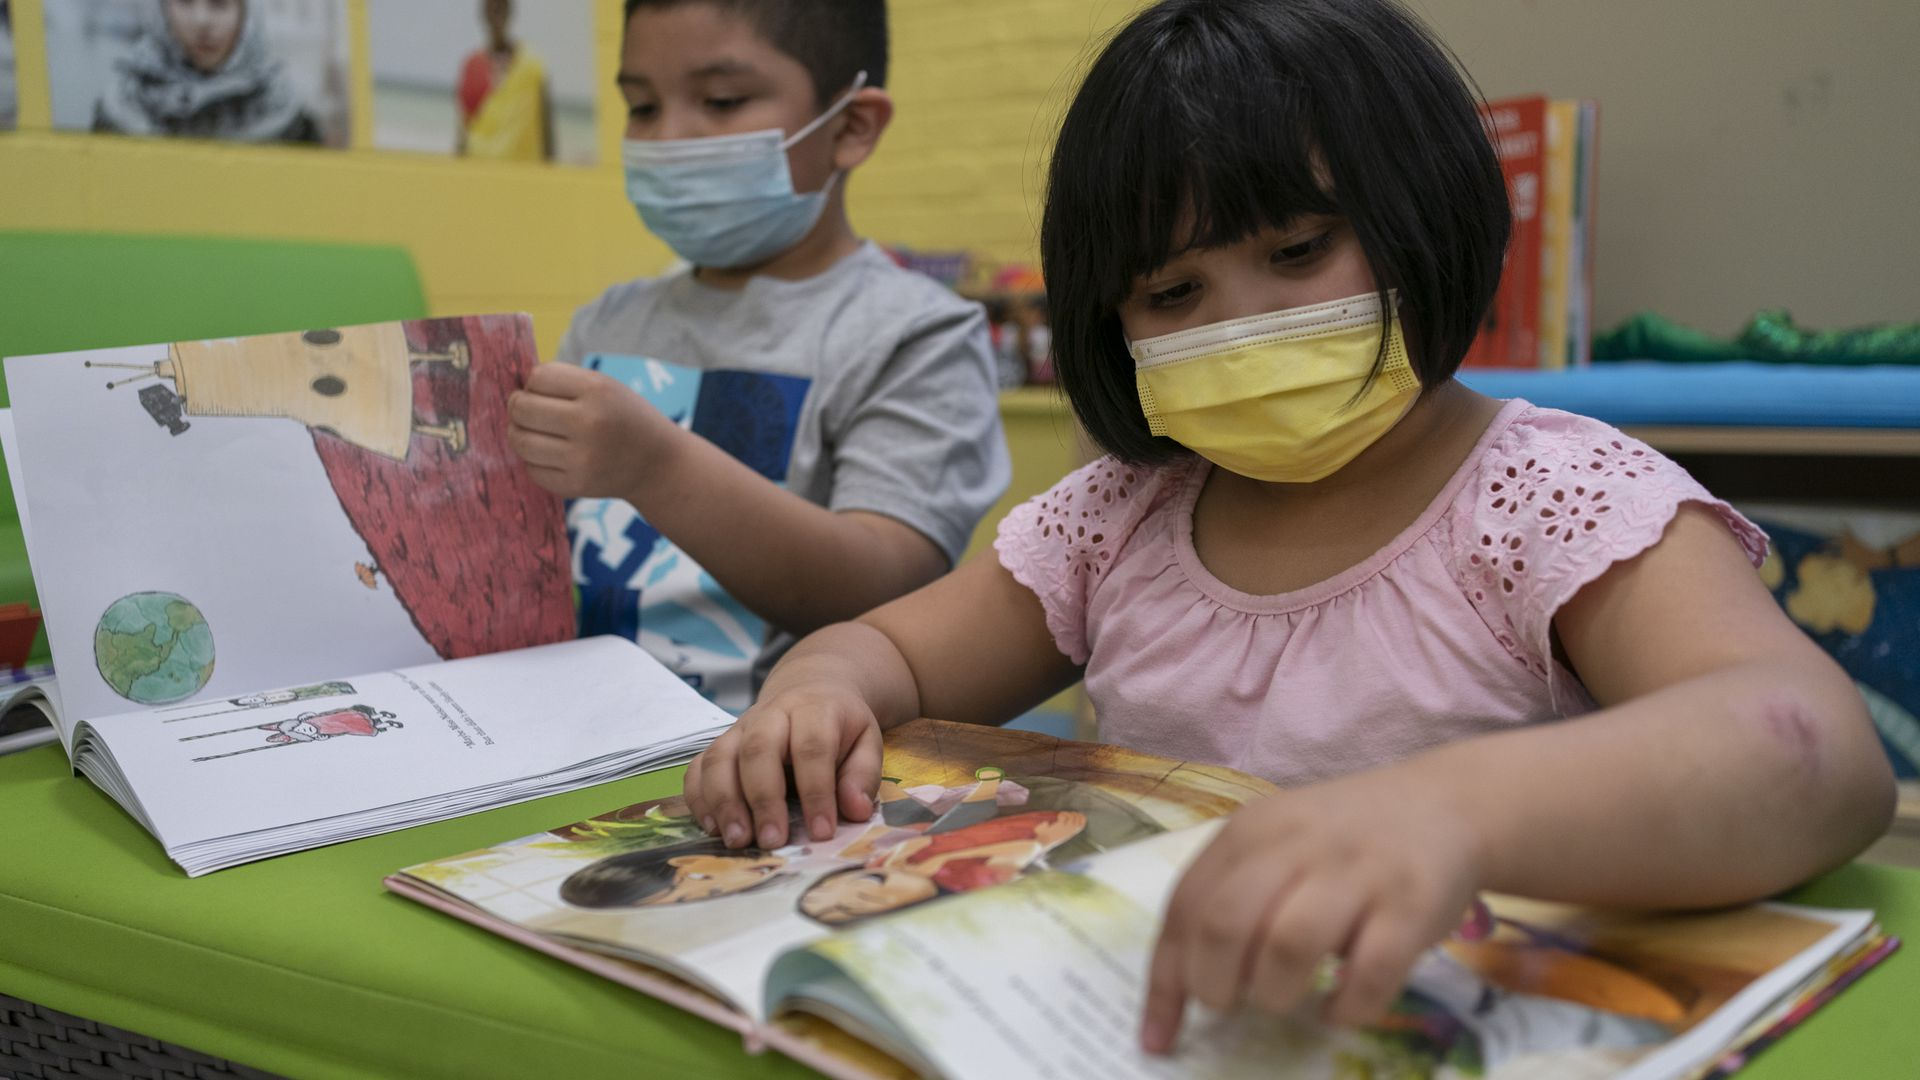 To the left, a young boy wearing a blue face mask and a gray shirt looks at a book. To his right is a young girl with a yellow face mask and a pink shirt looking at another book.